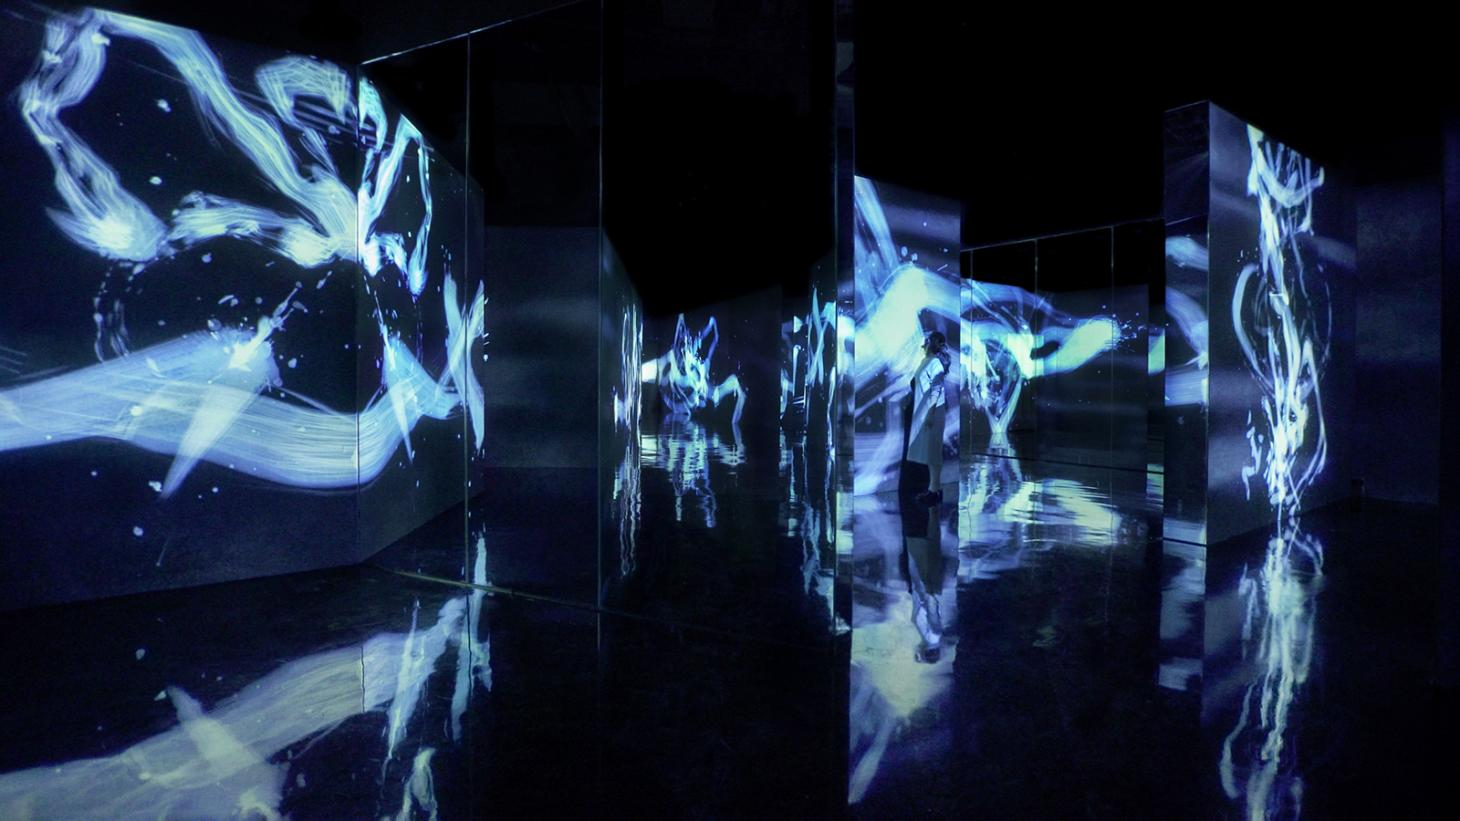 A room with blue streaks of light projected onto wall dividers